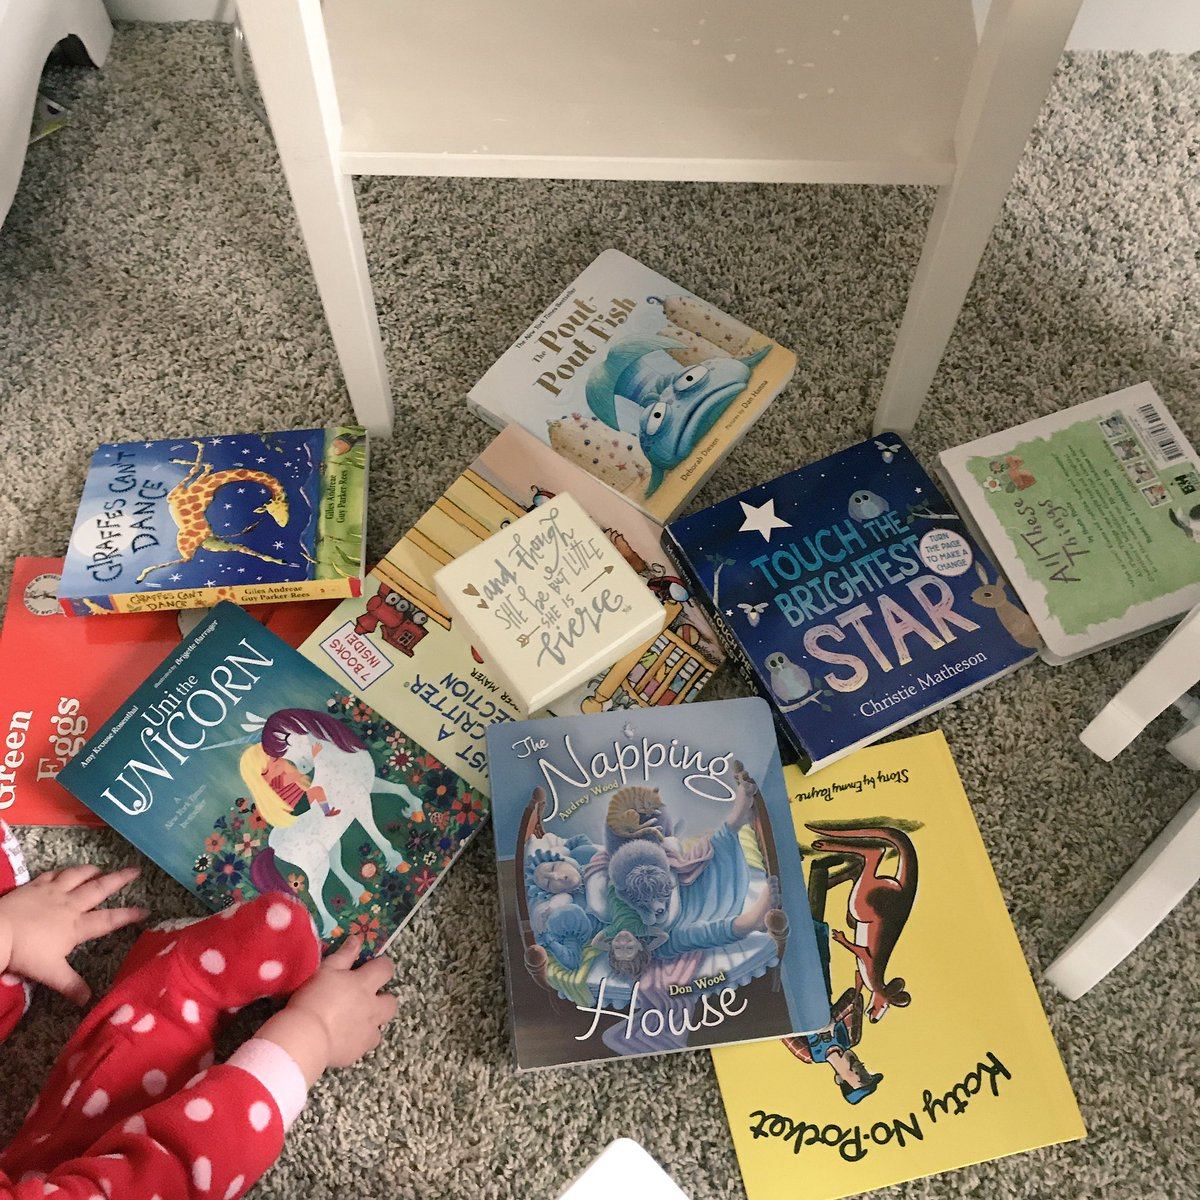 I would liken my 10x daily experience of putting baby books back on the shelf to that of Sisyphus pushing the rock up the hill in Tartarus. It&#39;s futile.   #momlife <br>http://pic.twitter.com/B3vw2uLyzf